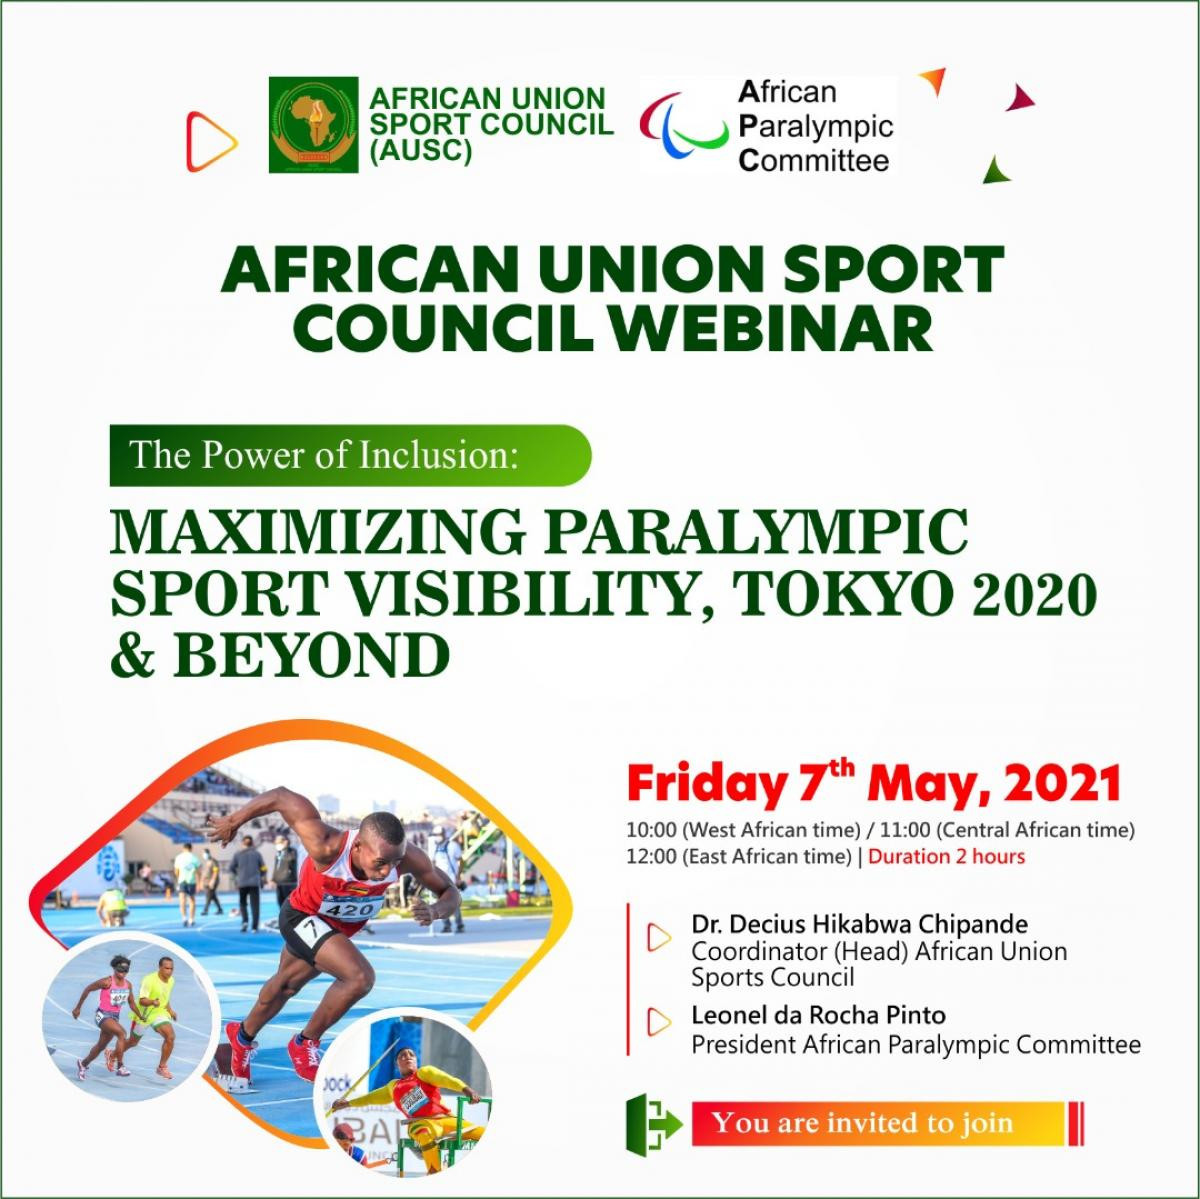 The webinar is being jointly organised by the African Paralympic Committee and African Union Sport Council ©APC